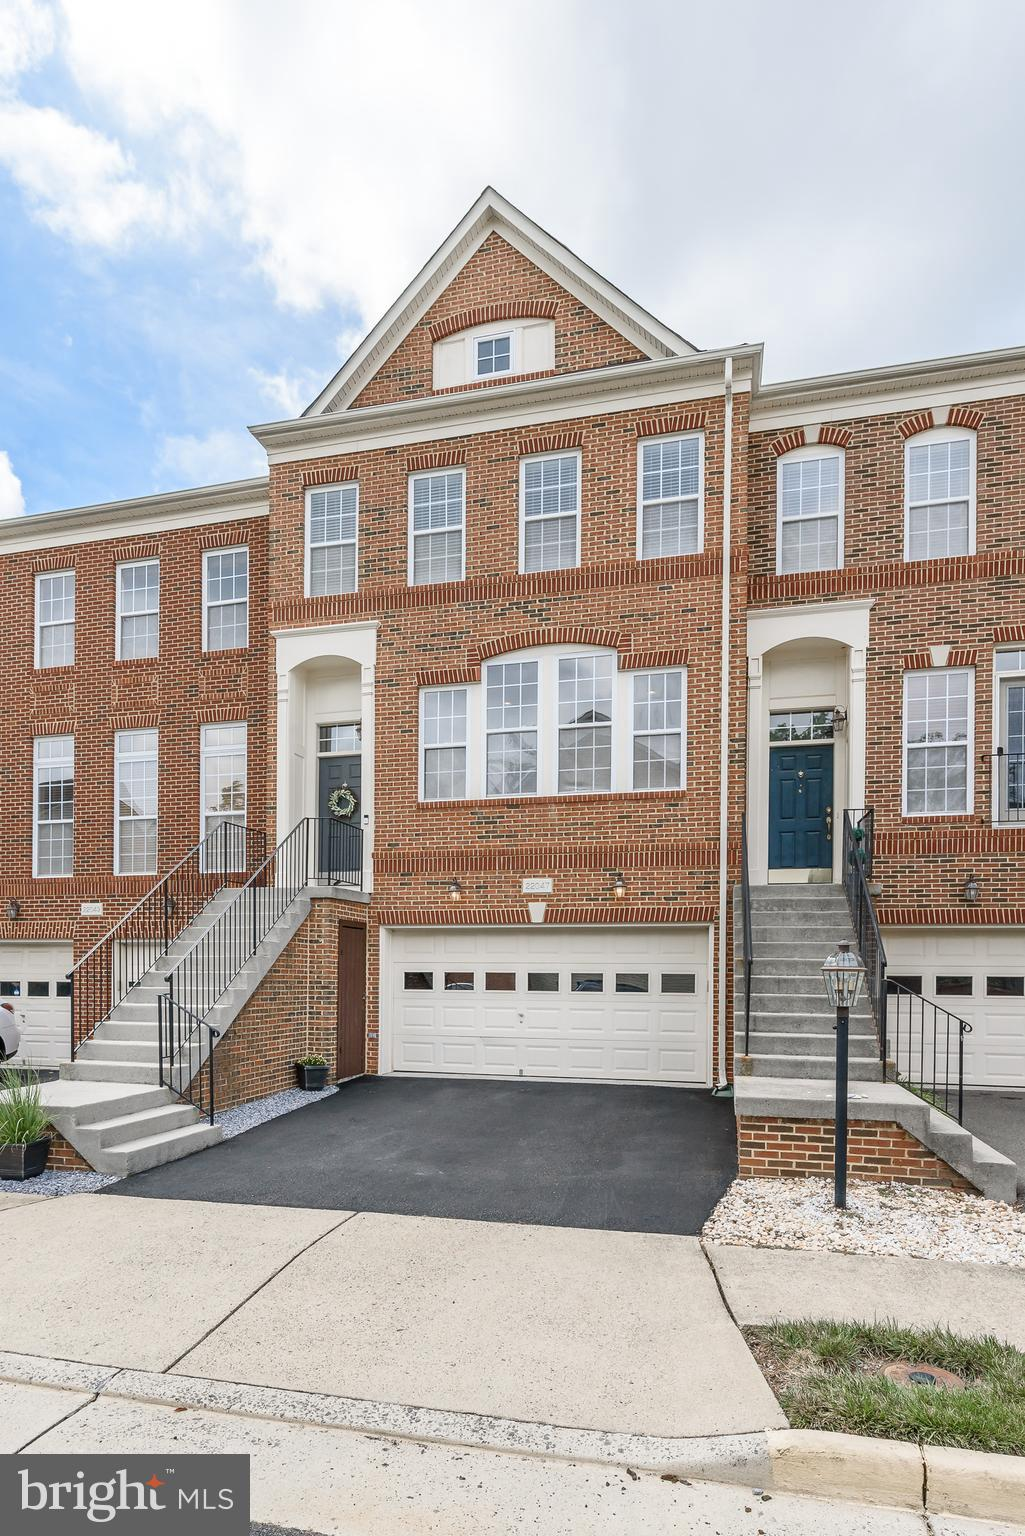 Stunning 2-car garage Cambridge Model Townhome in the Broadlands featuring 3BR, 3.5BA.  Gourmet kitc